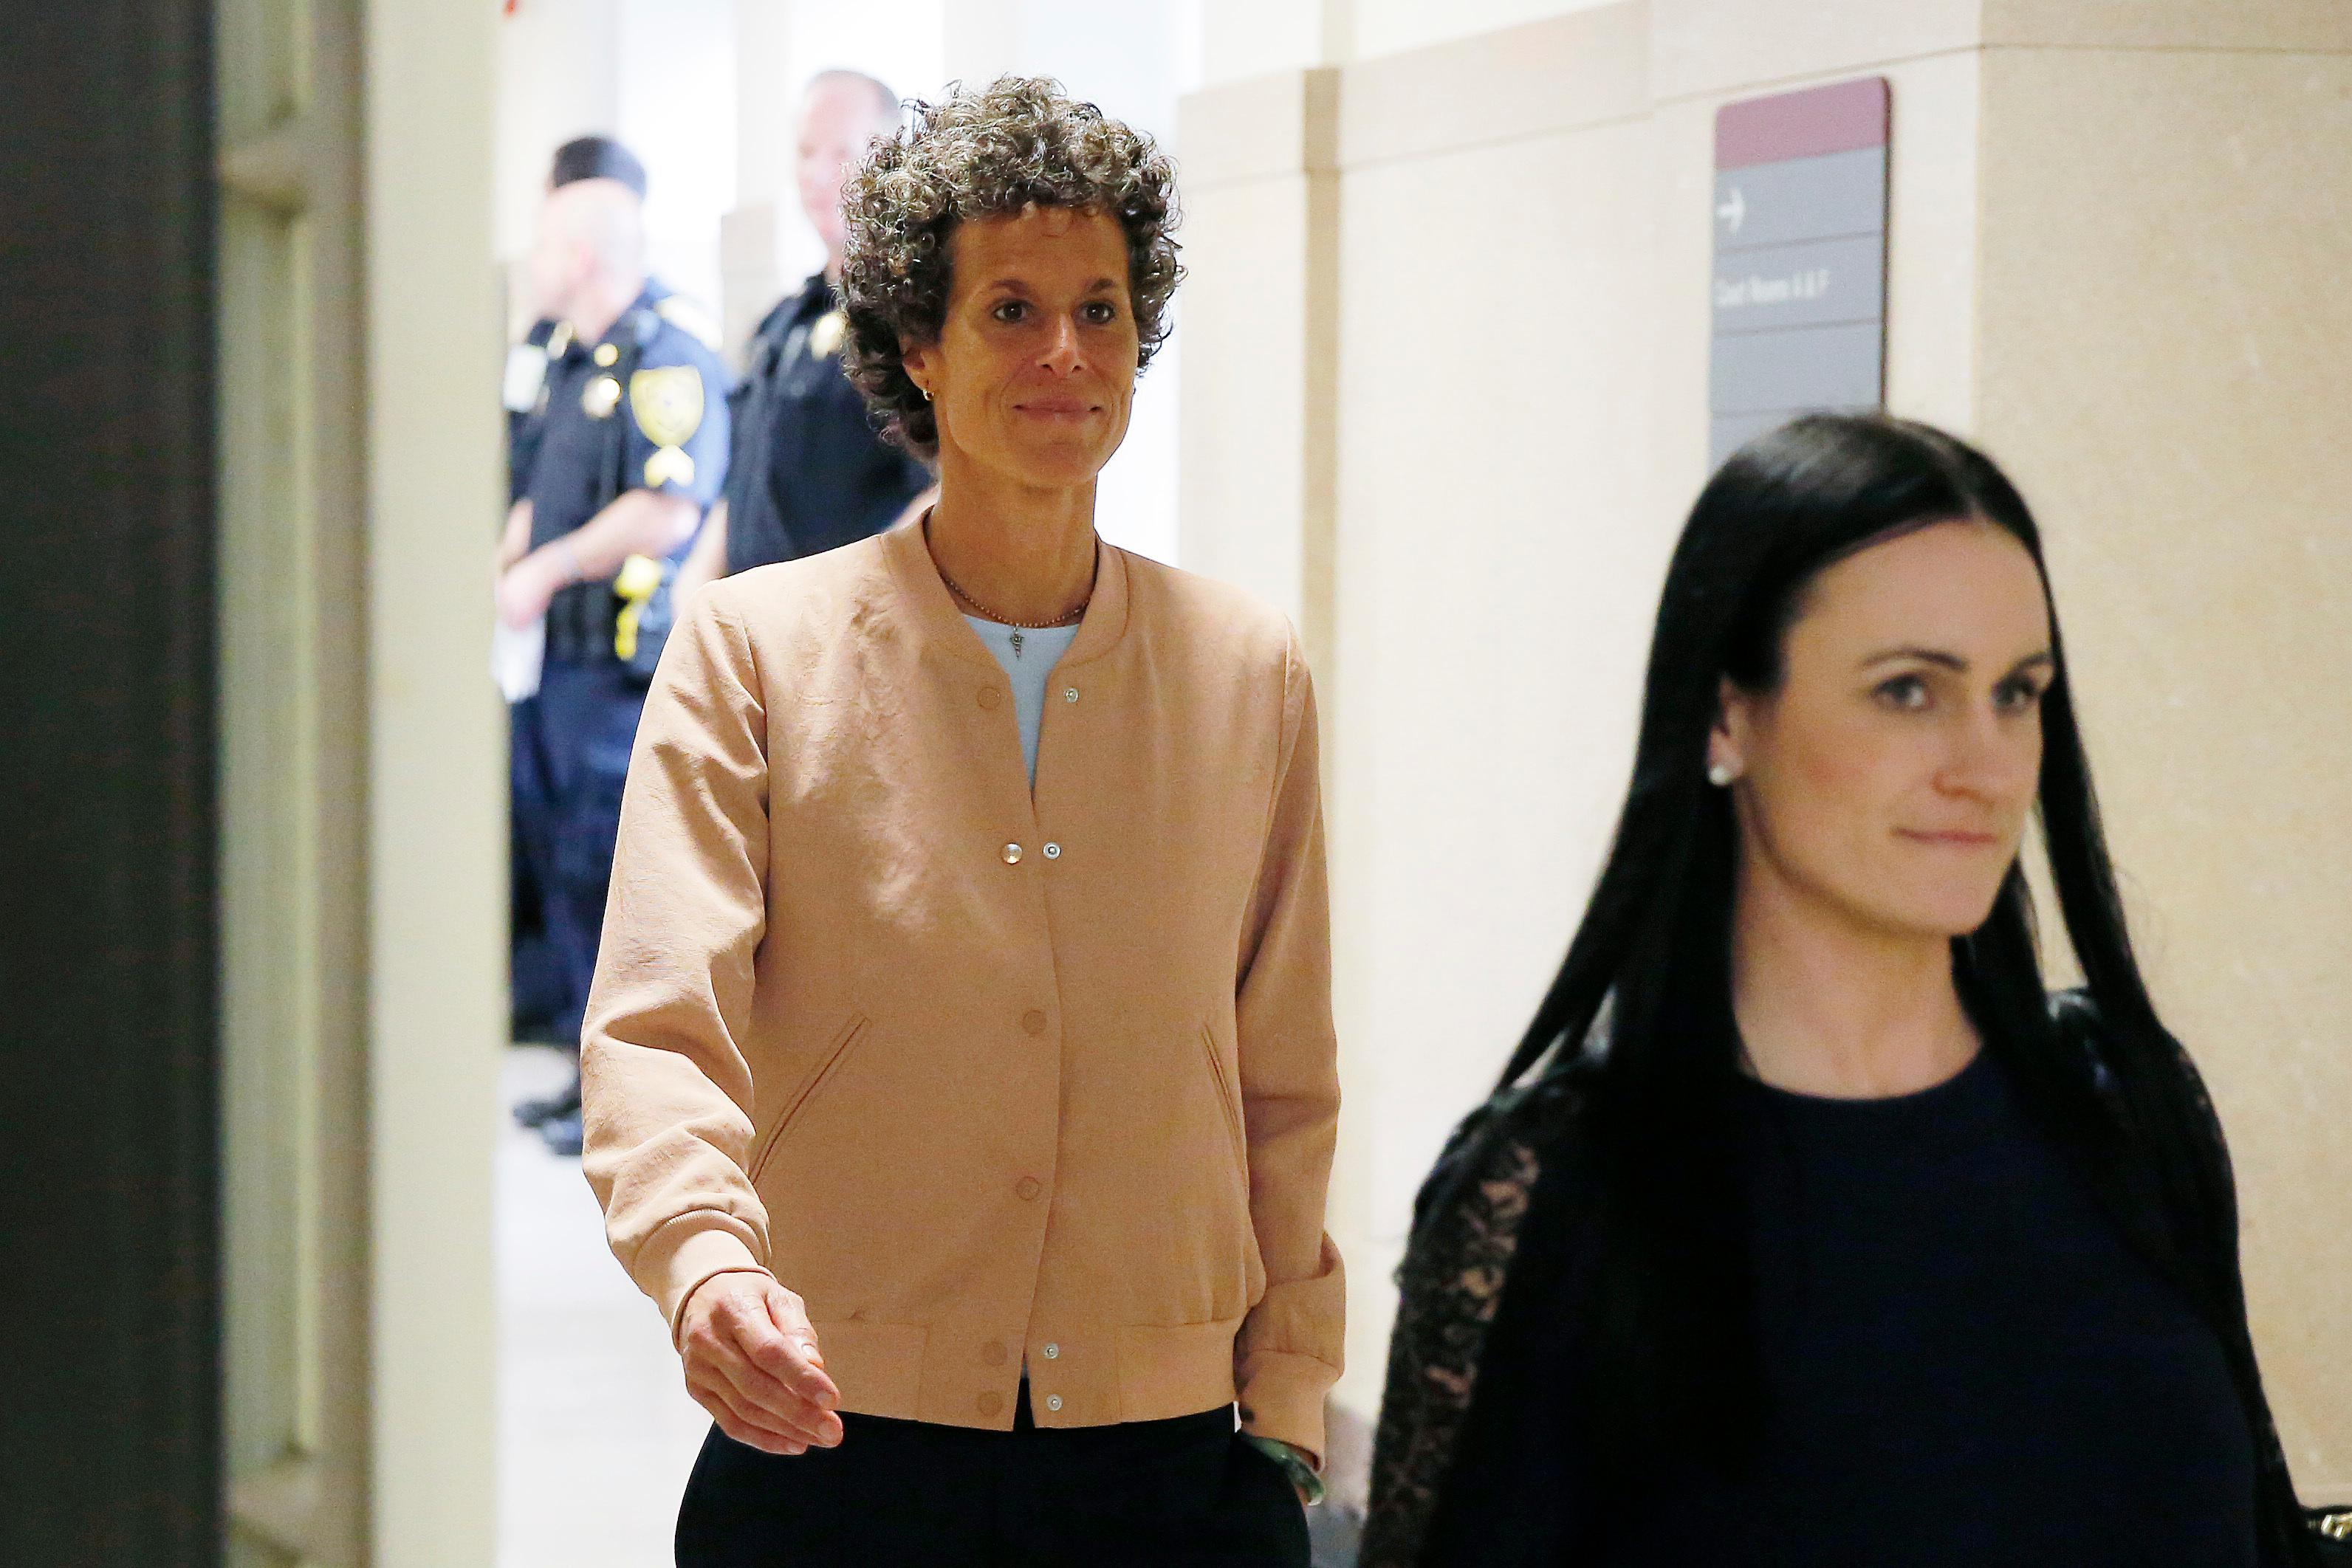 Andrea Constand, left, returns to the courtroom after a lunch break during Bill Cosby's sexual assault retrial at the Montgomery County Courthouse in Norristown, Pa., Monday, April 16, 2018. (Dominick Reuter/Pool Photo via AP)